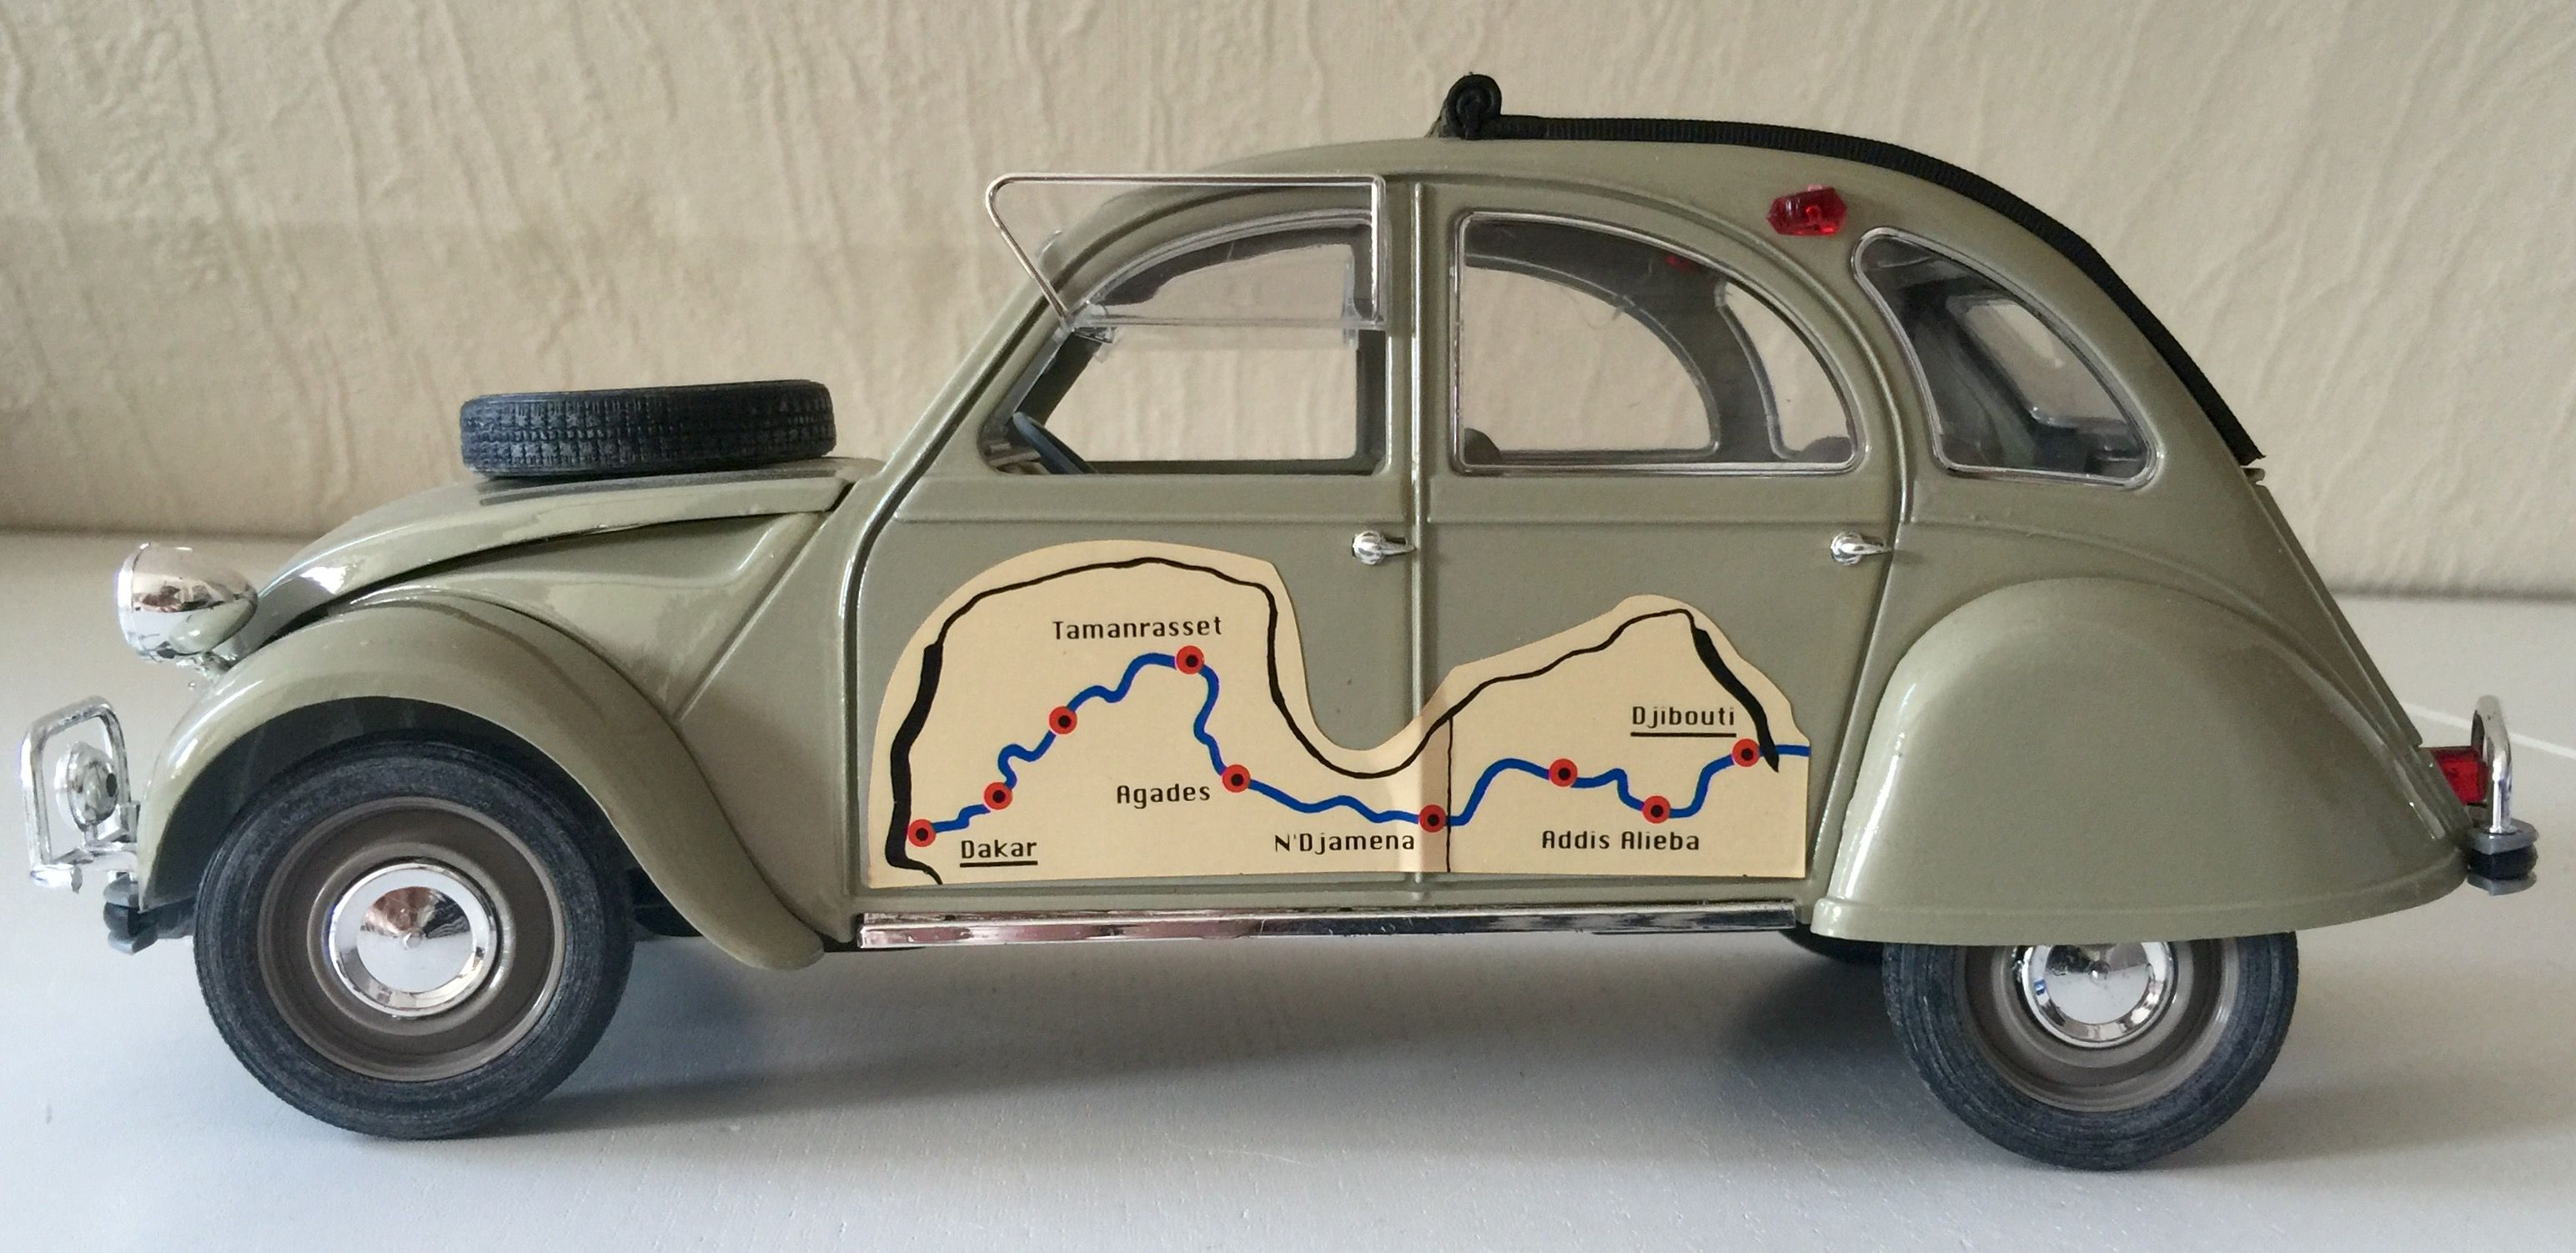 Citroen 2cv Rallye Dakar Djibouti 1 17 Solido Car Model Toy Car Classic Cars